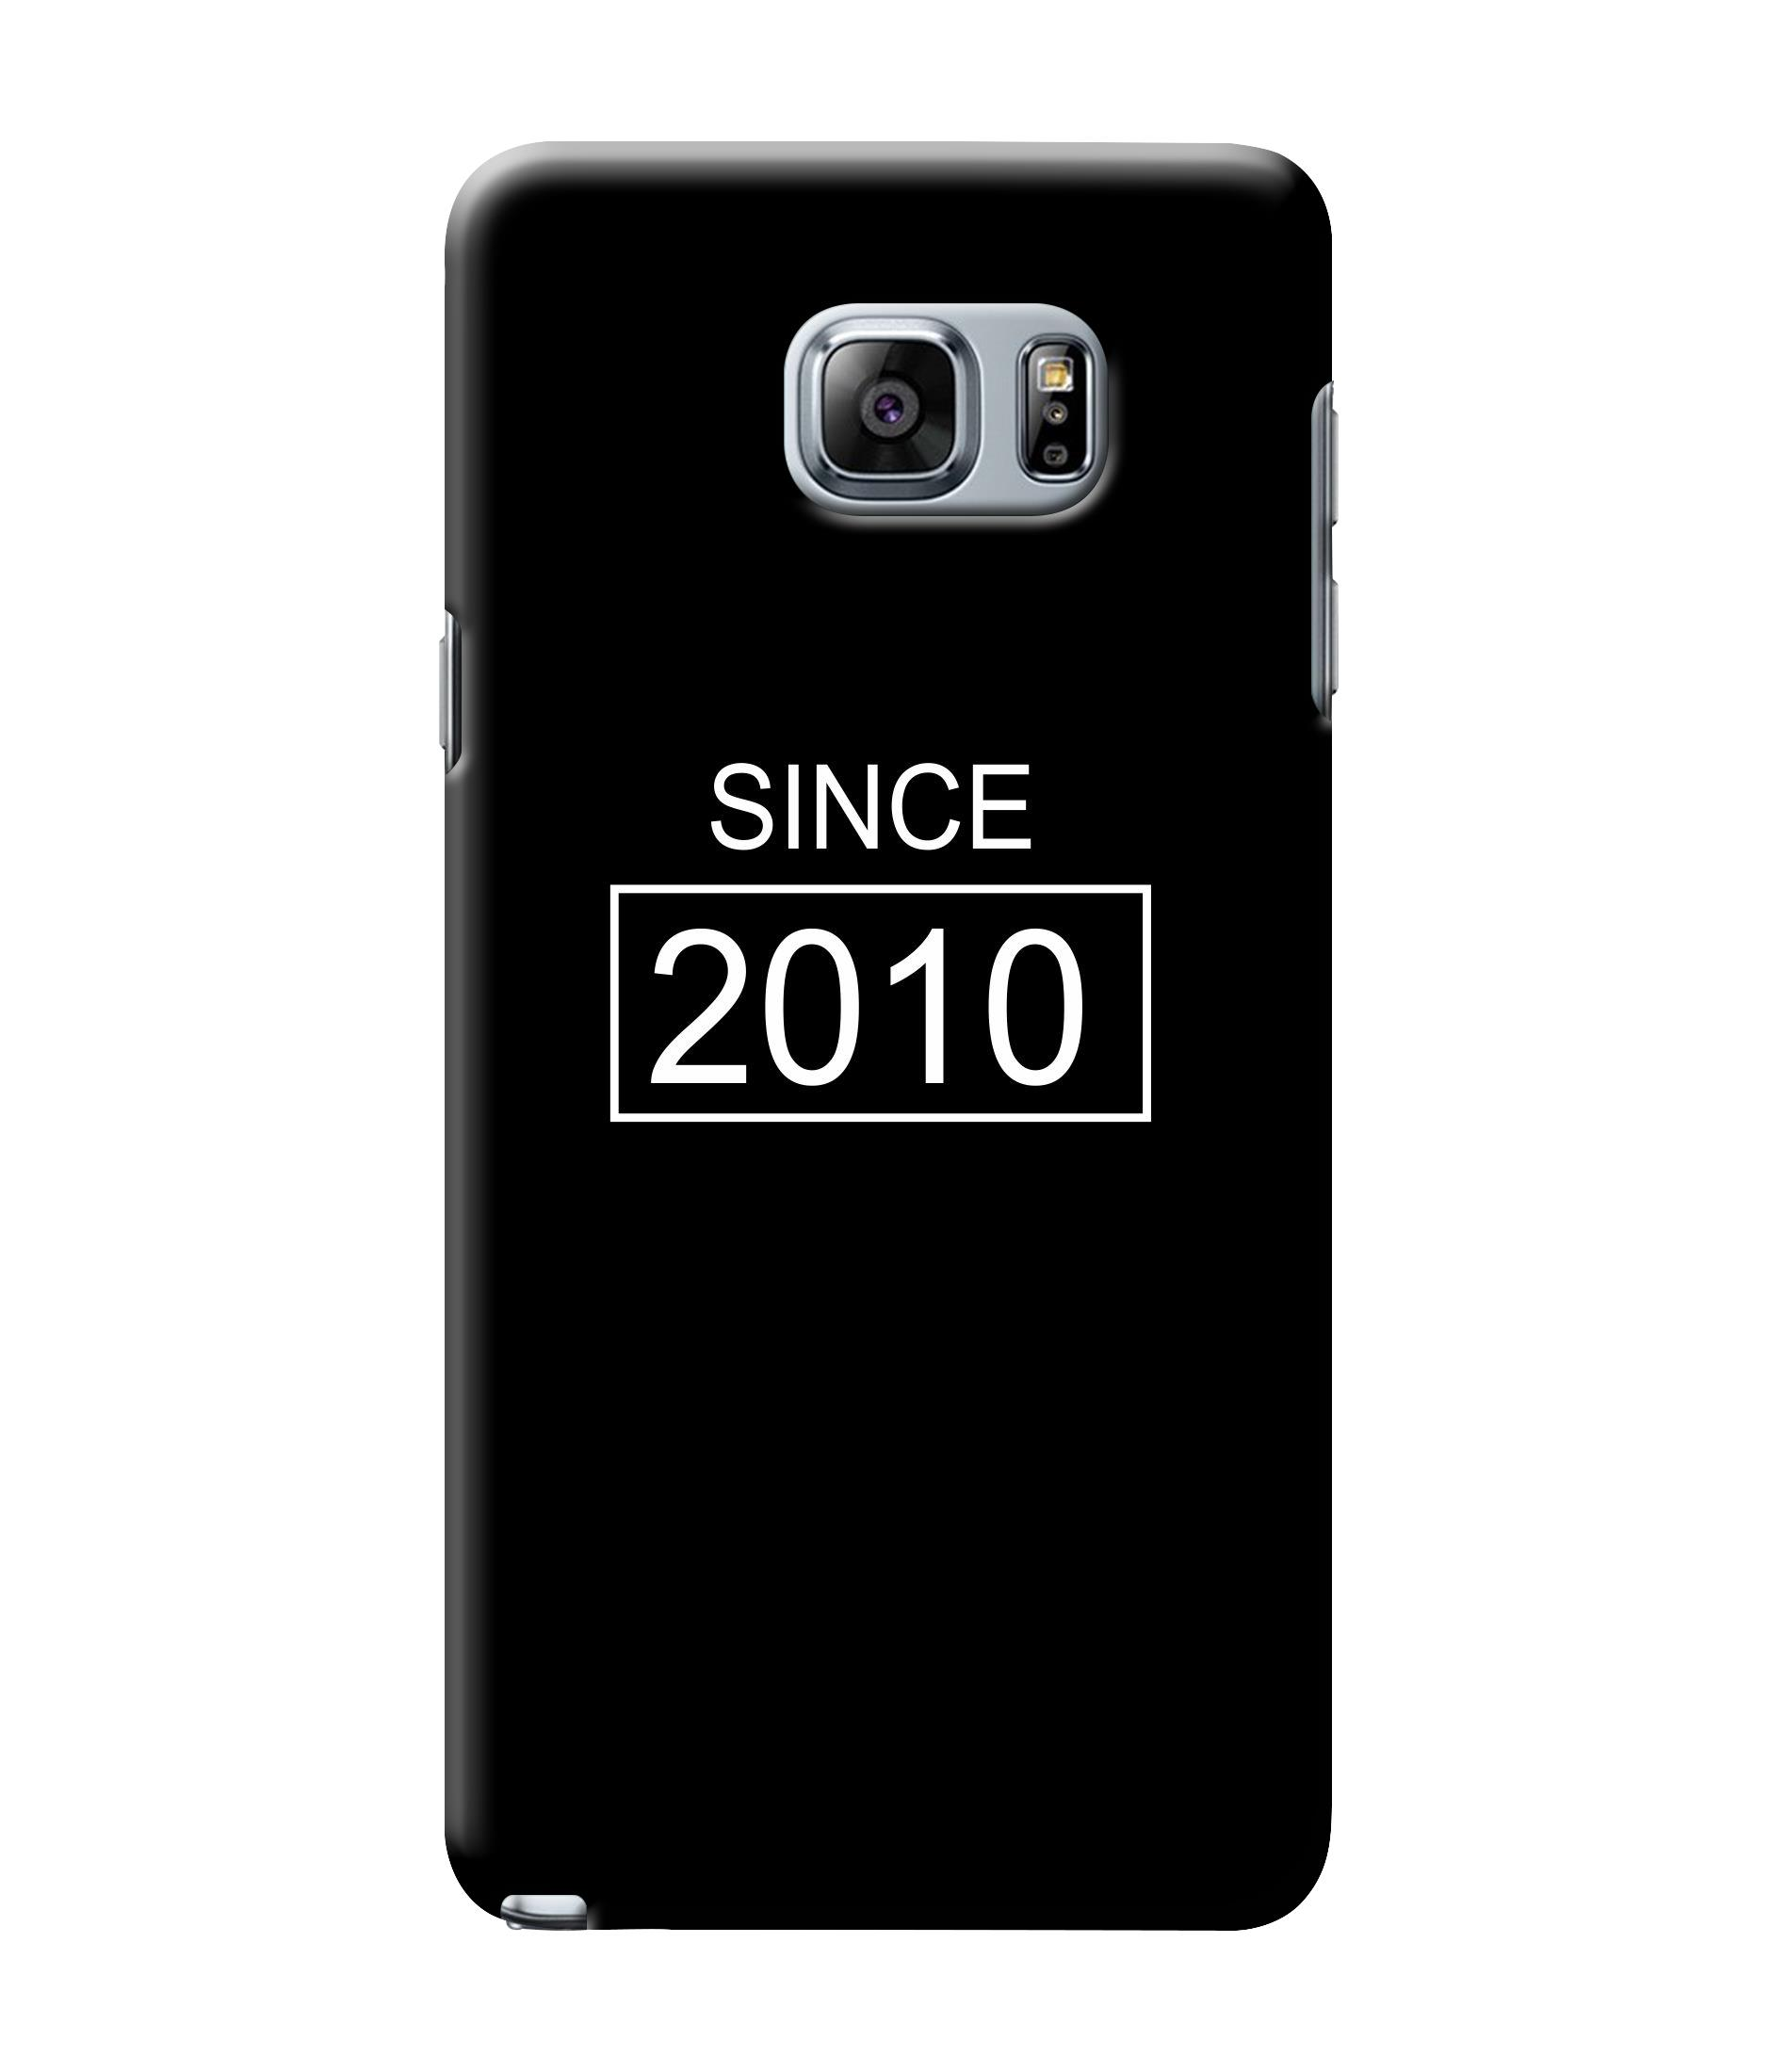 caseophile2 Samsung Galaxy Note 5 Since 2010 Mobile Case